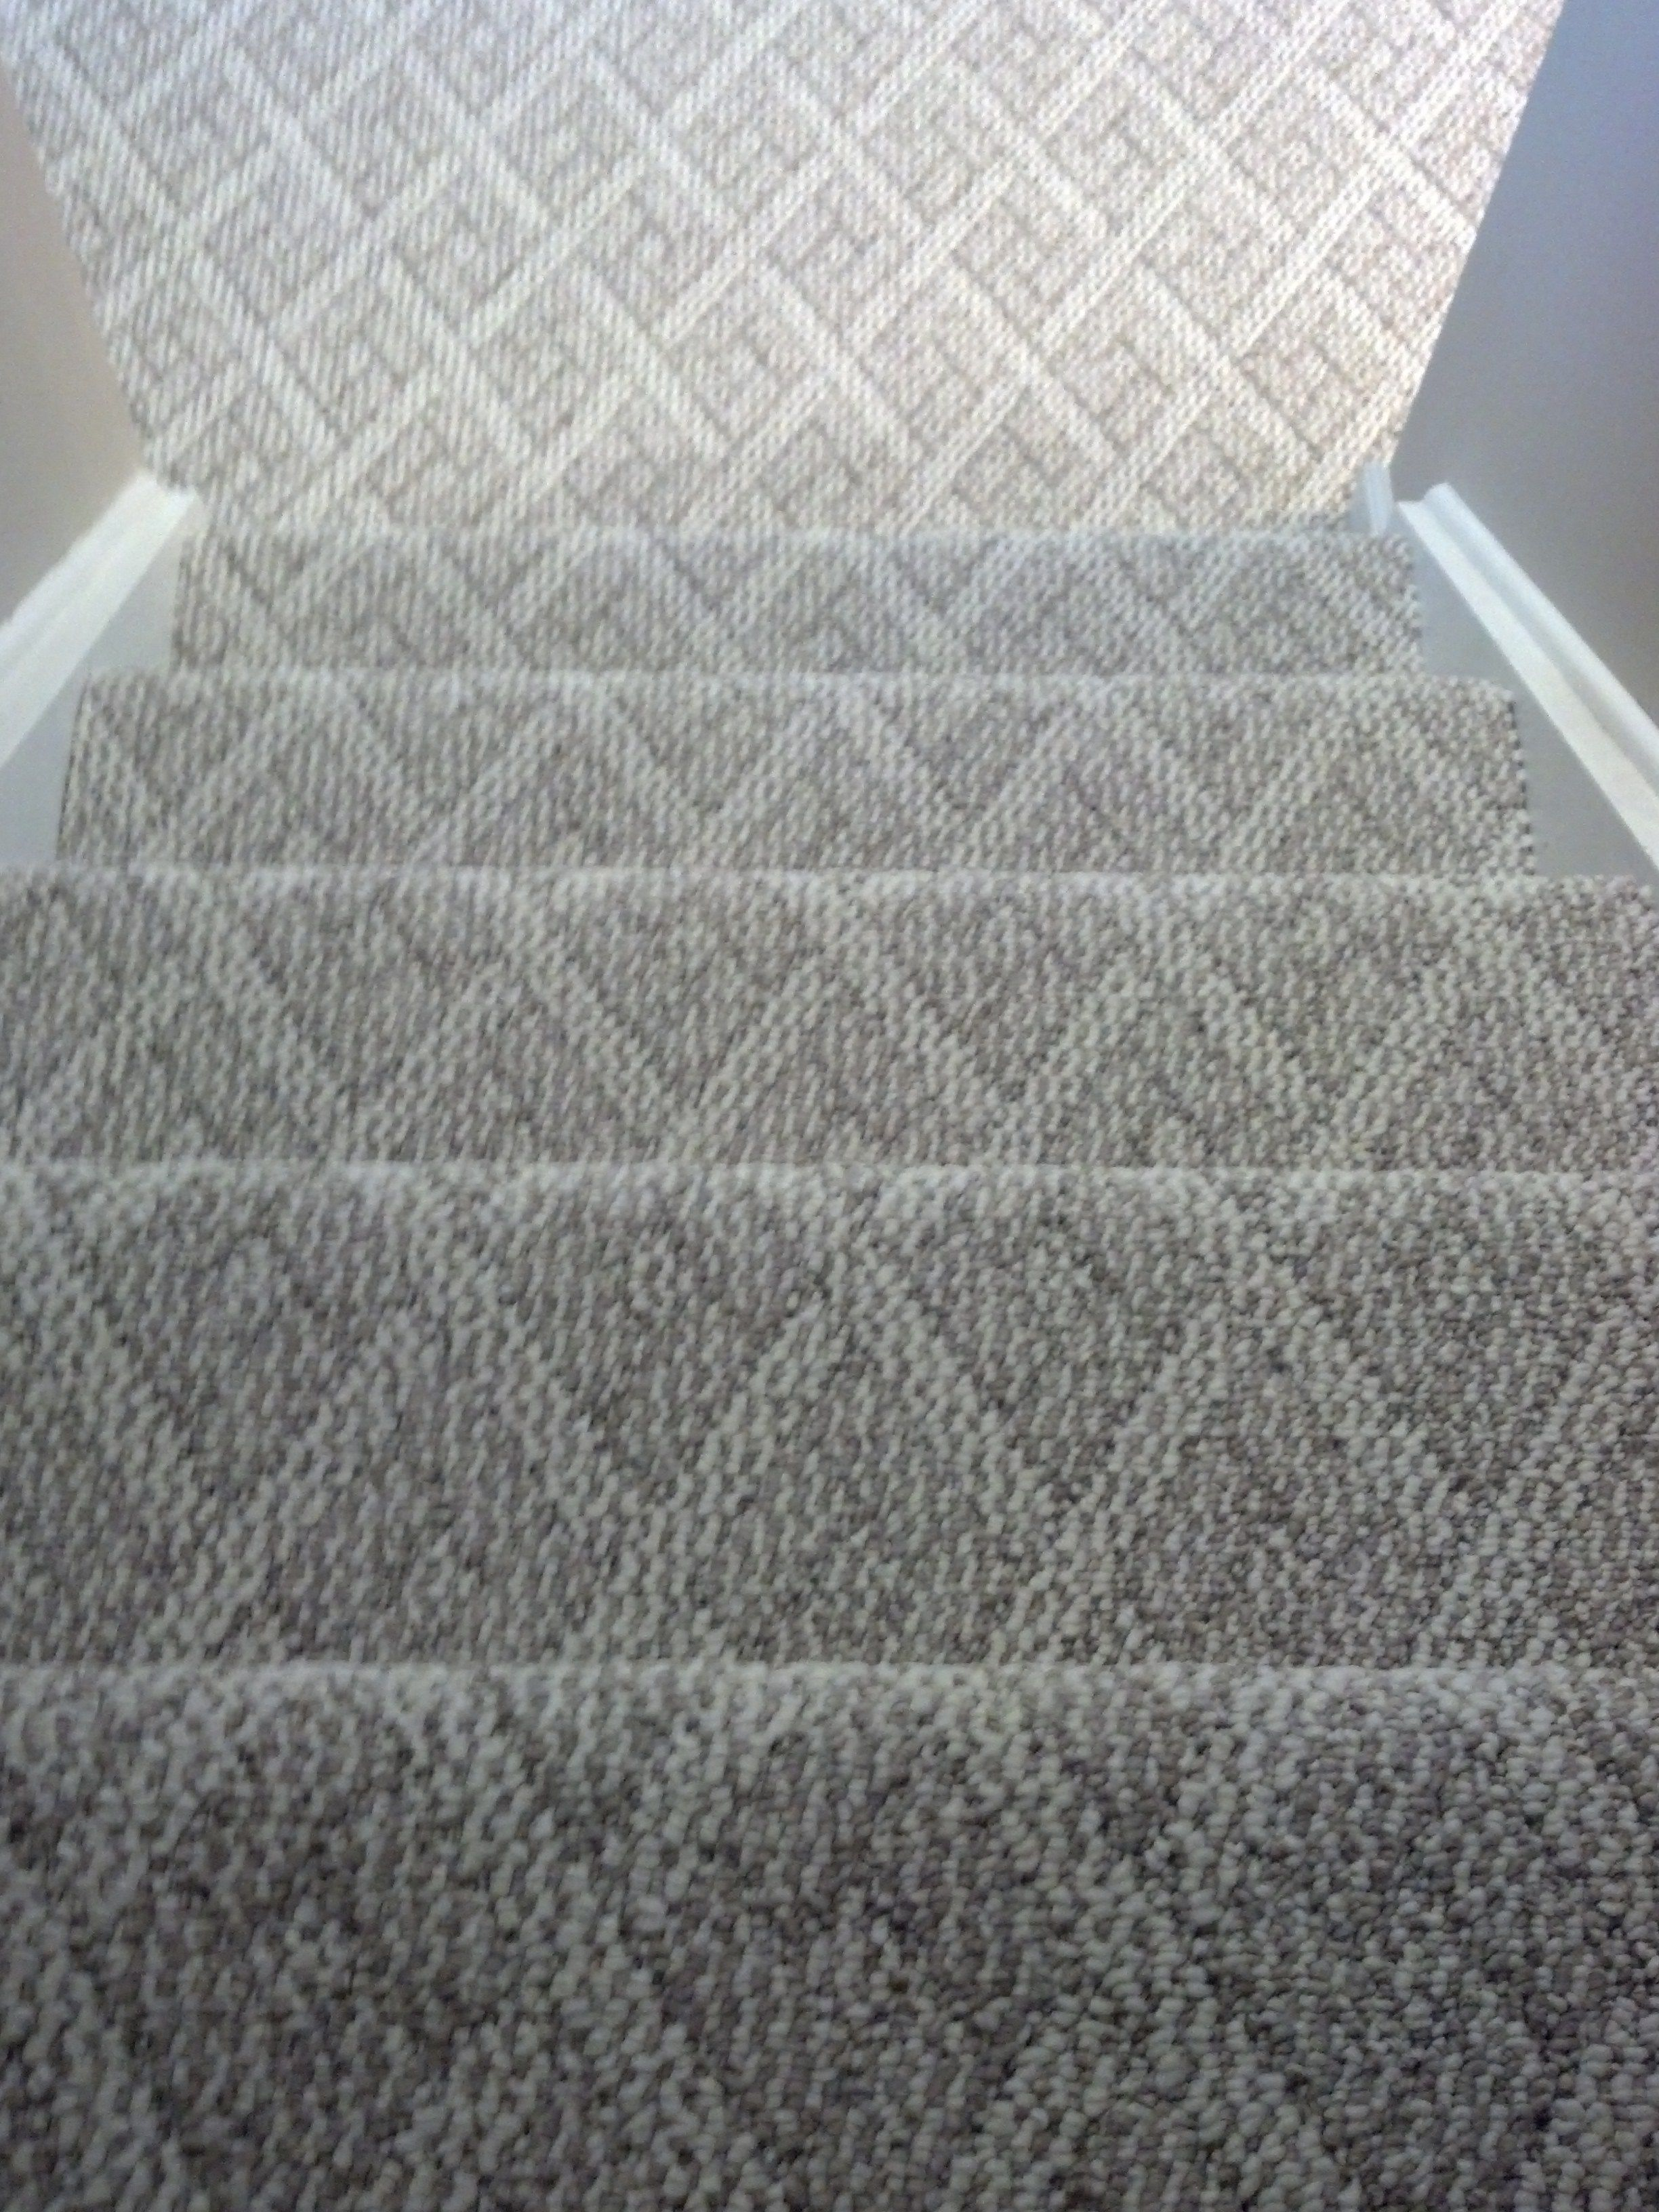 Which Carpet Is Best Of Berber Carpet Cincinnati Ohio Installed On Steps And